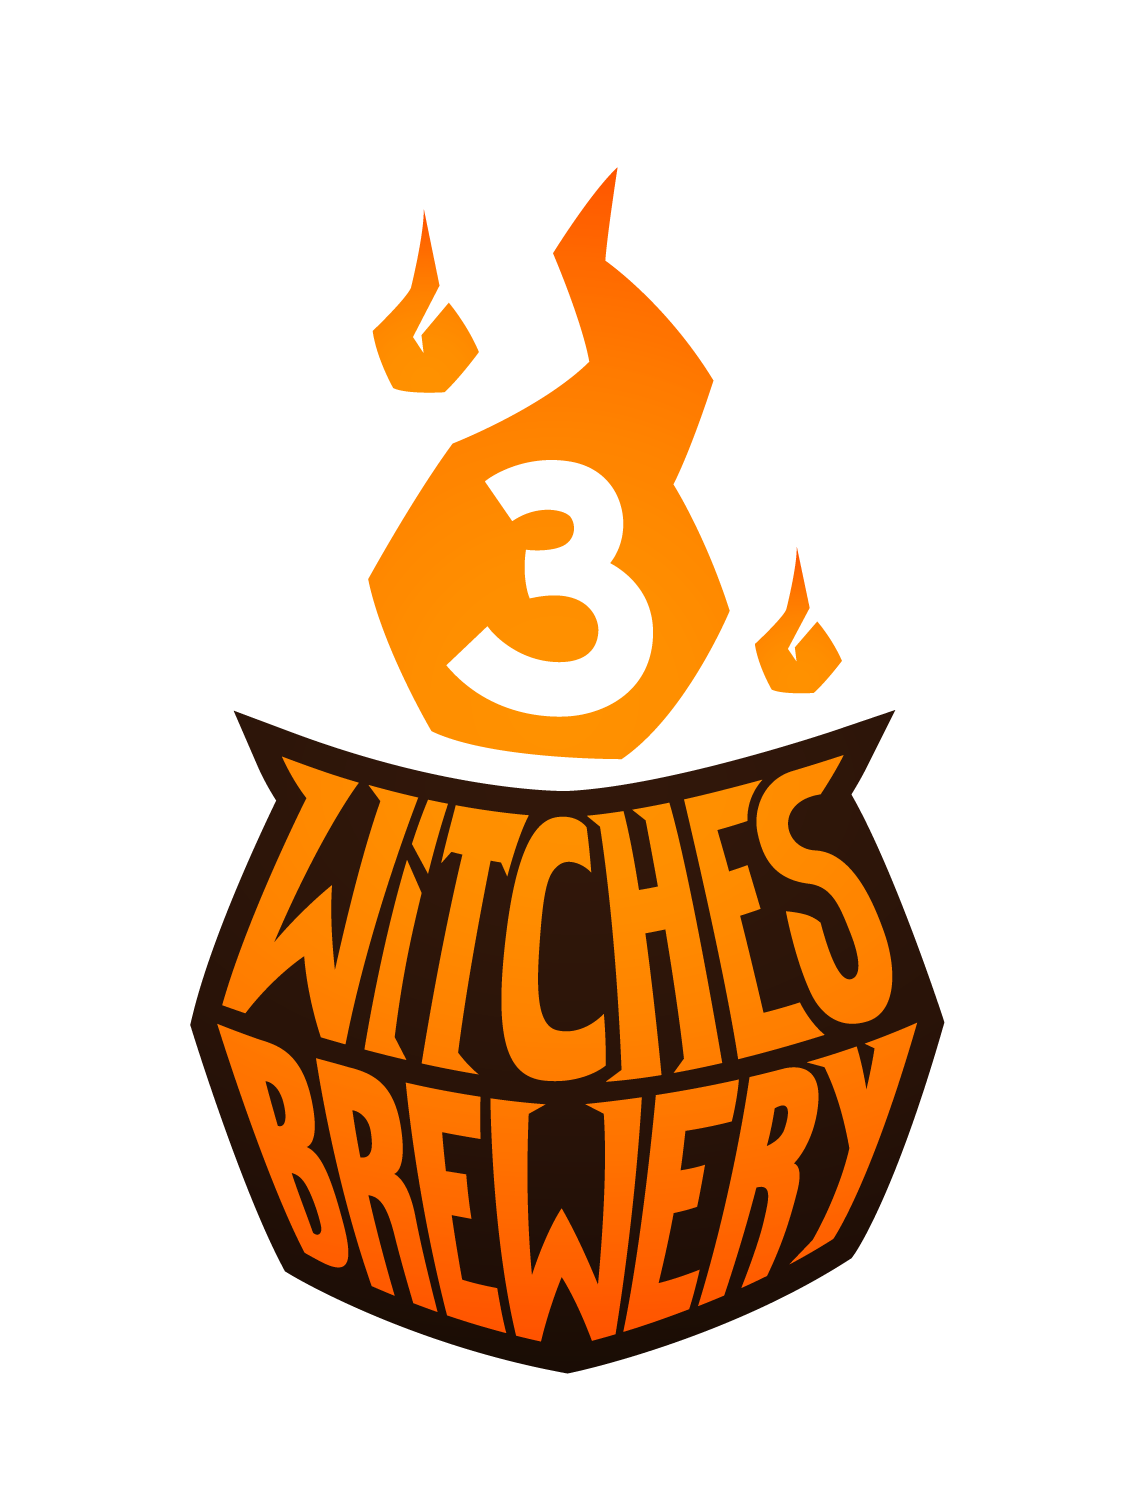 3 Witches Brewery